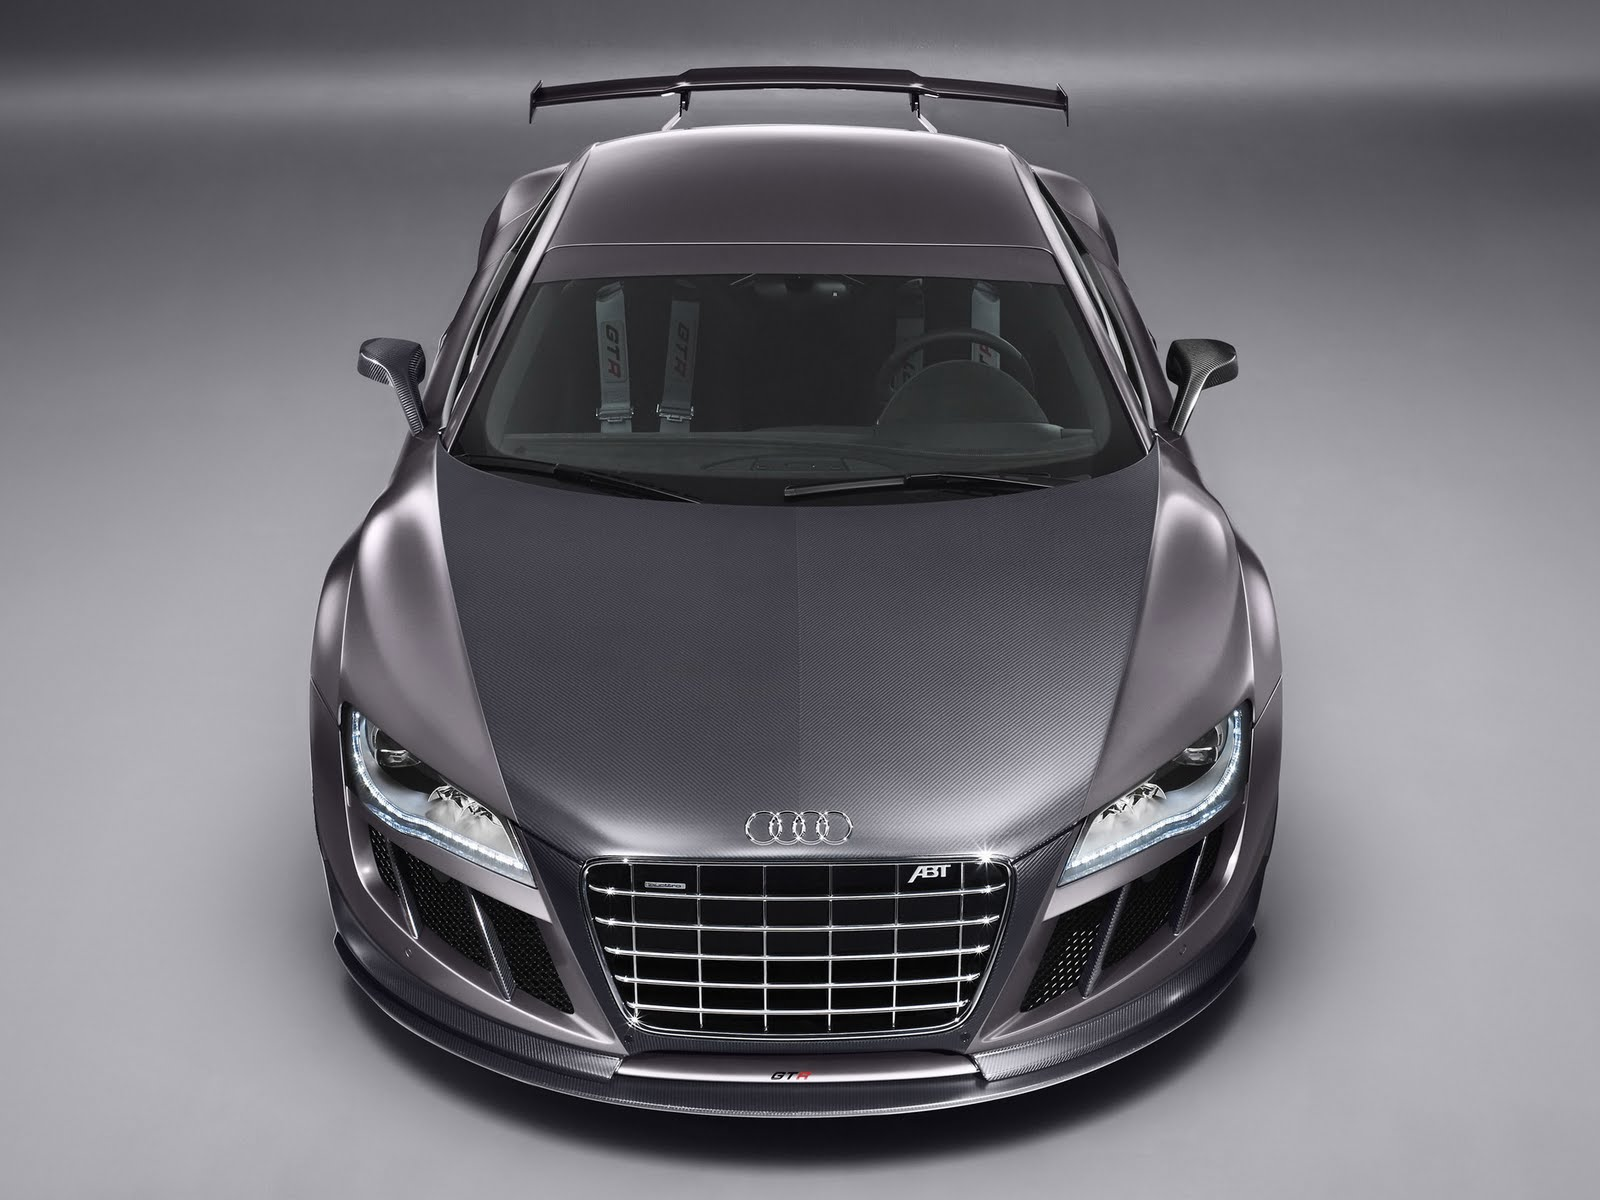 Car Au Audi R8 Tuning By Abt Used And New Cars From Australia Car Company And Best Australian